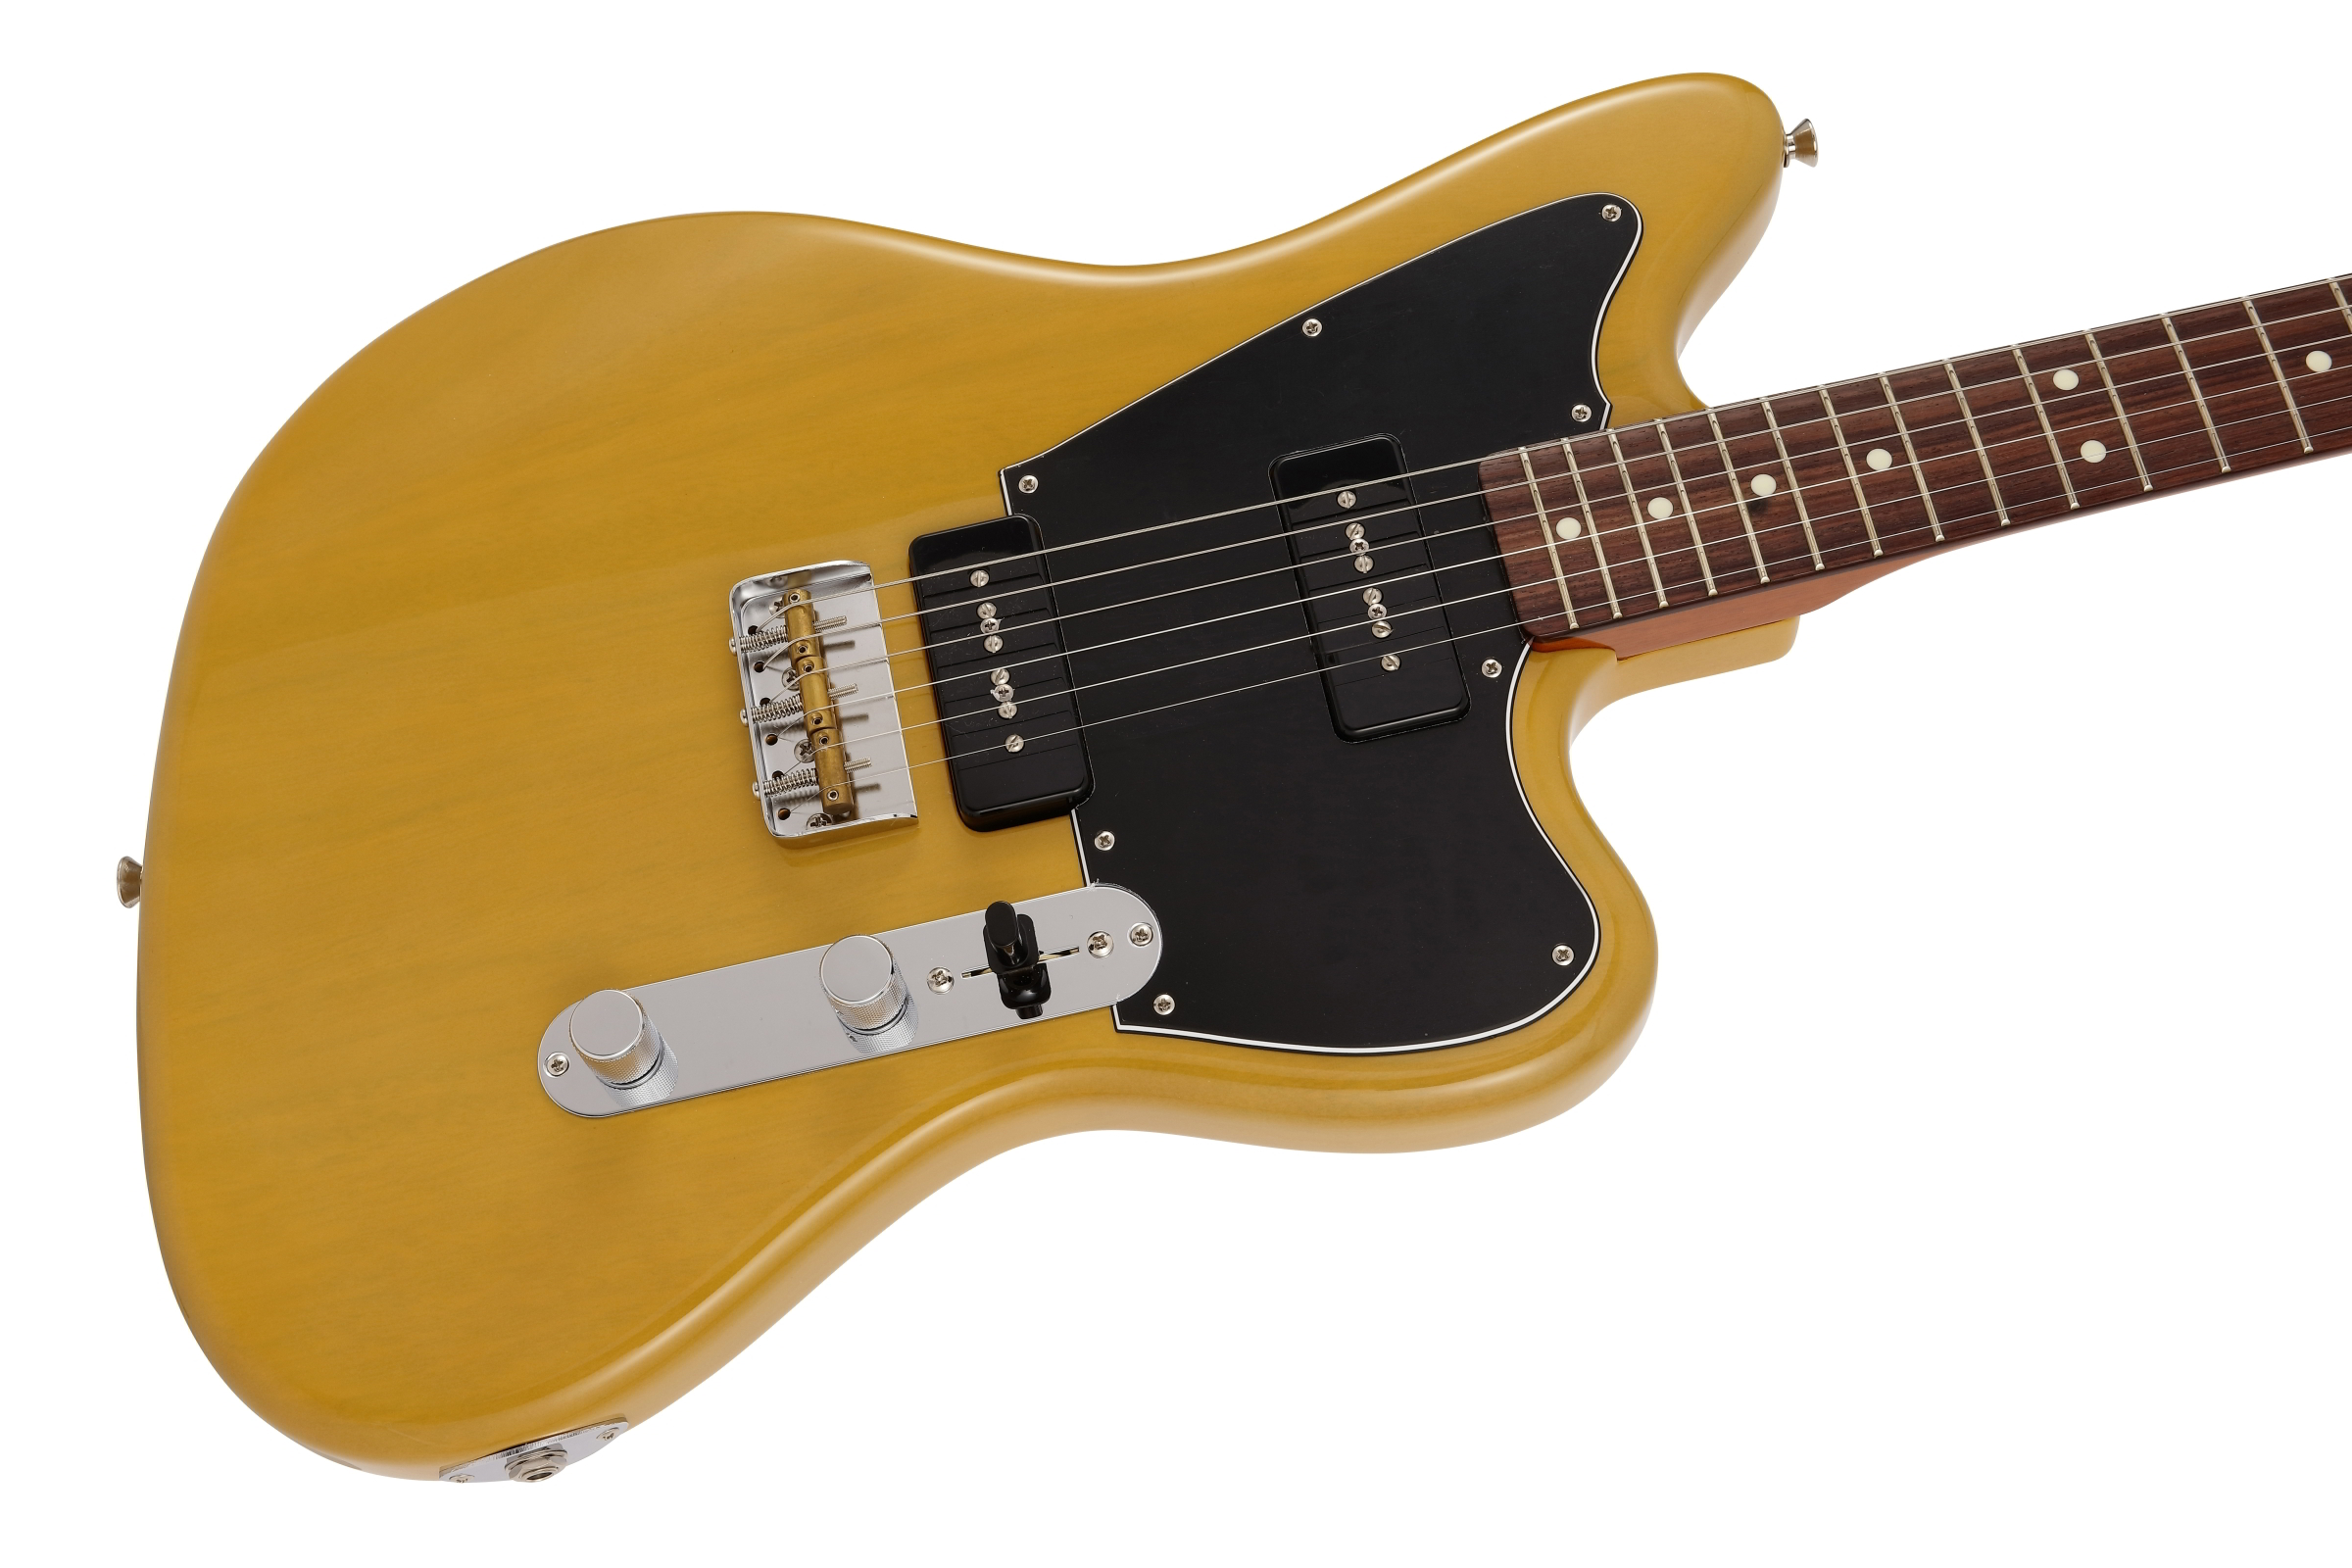 Limited Mahogany Offset Telecaster P90  Yellow Trans追加画像